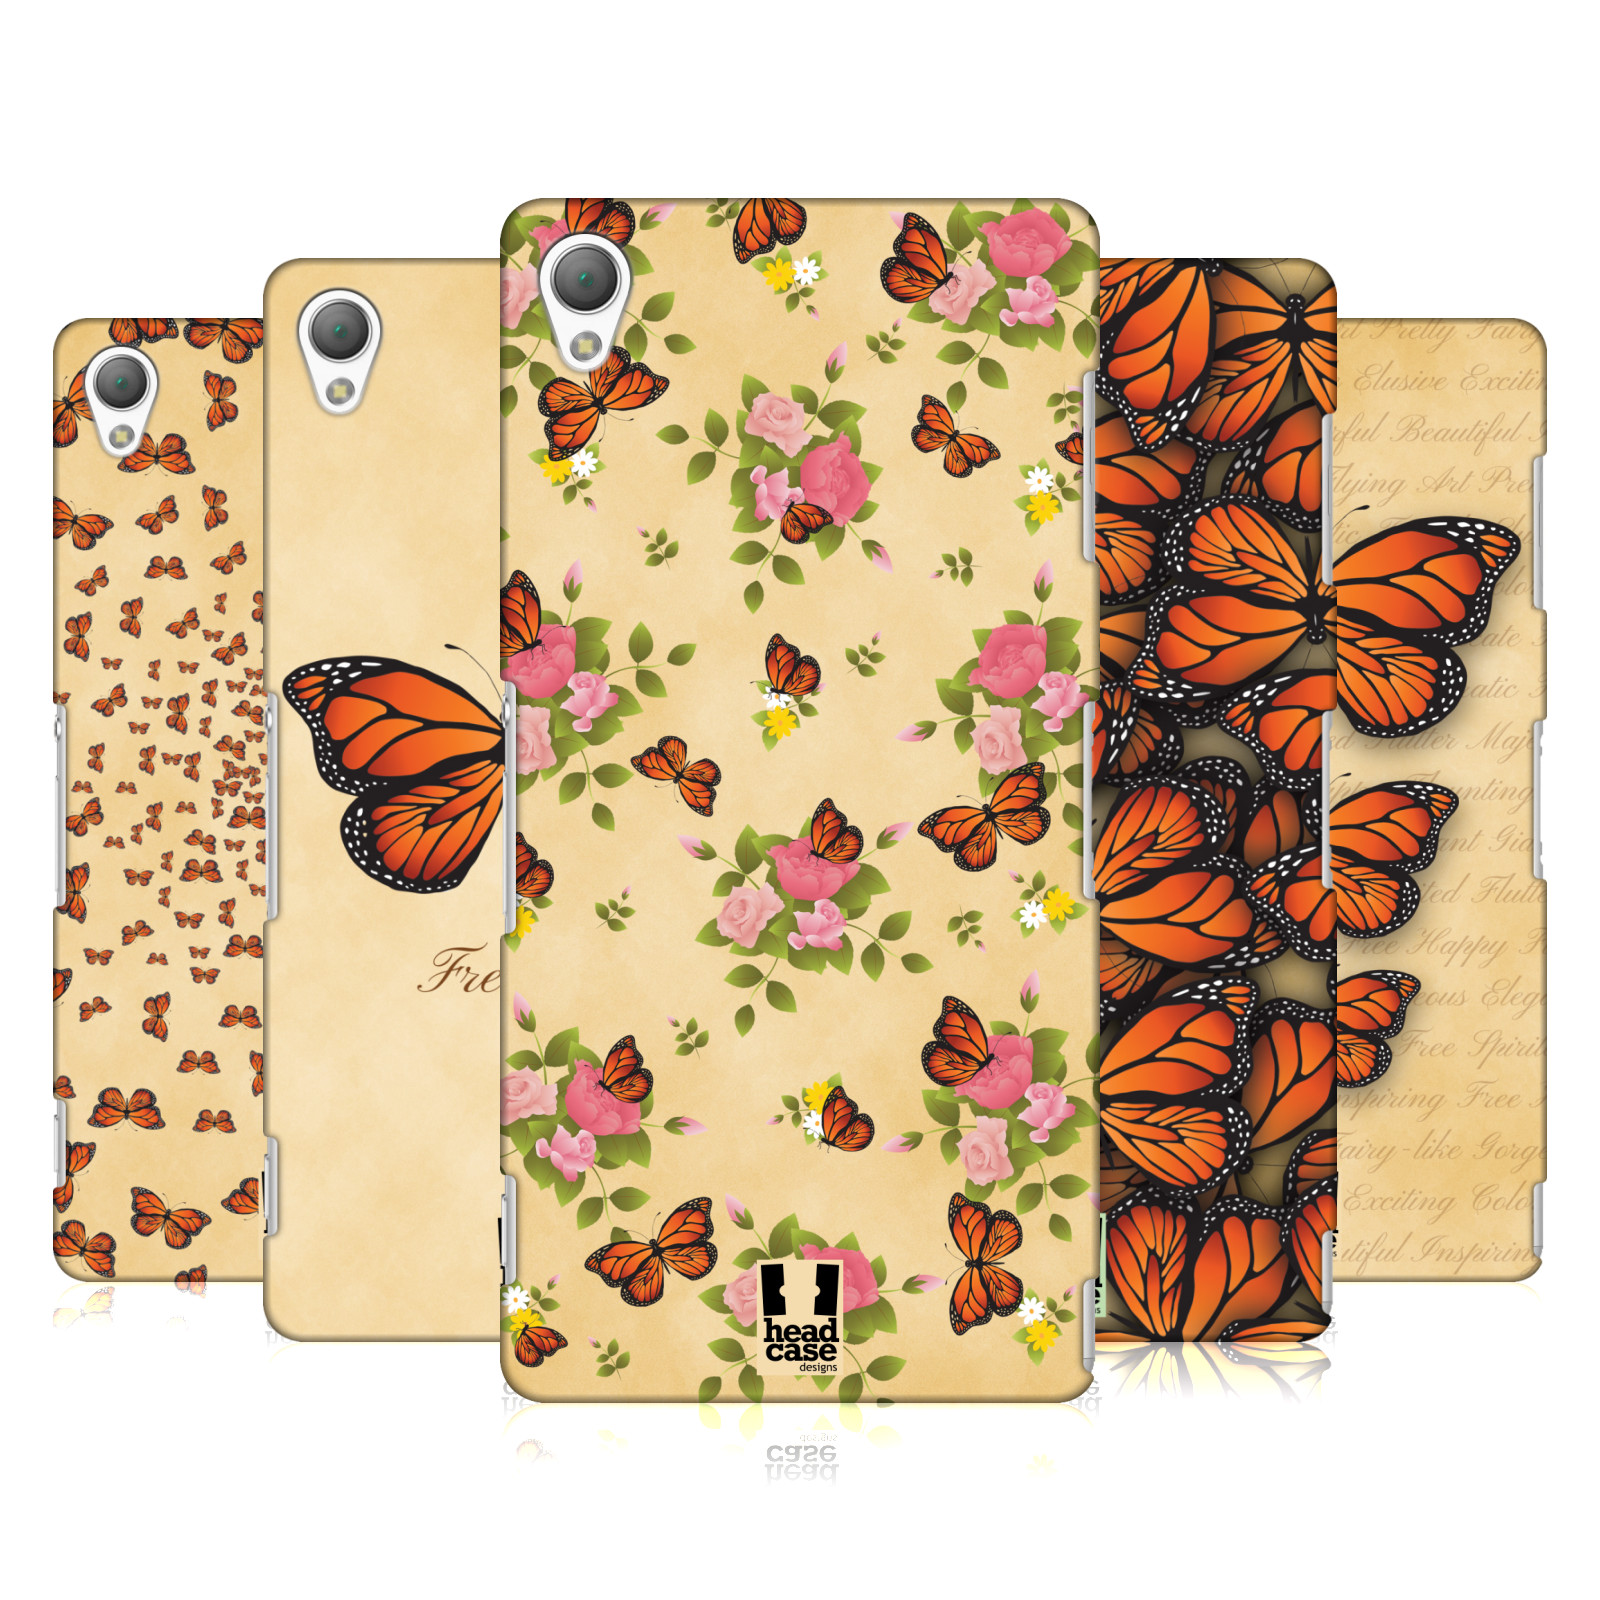 HEAD-CASE-DESIGNS-MONARCH-SCHMETTERLING-MUSTER-RUCKSEITE-HULLE-FUR-SONY-HANDYS-1